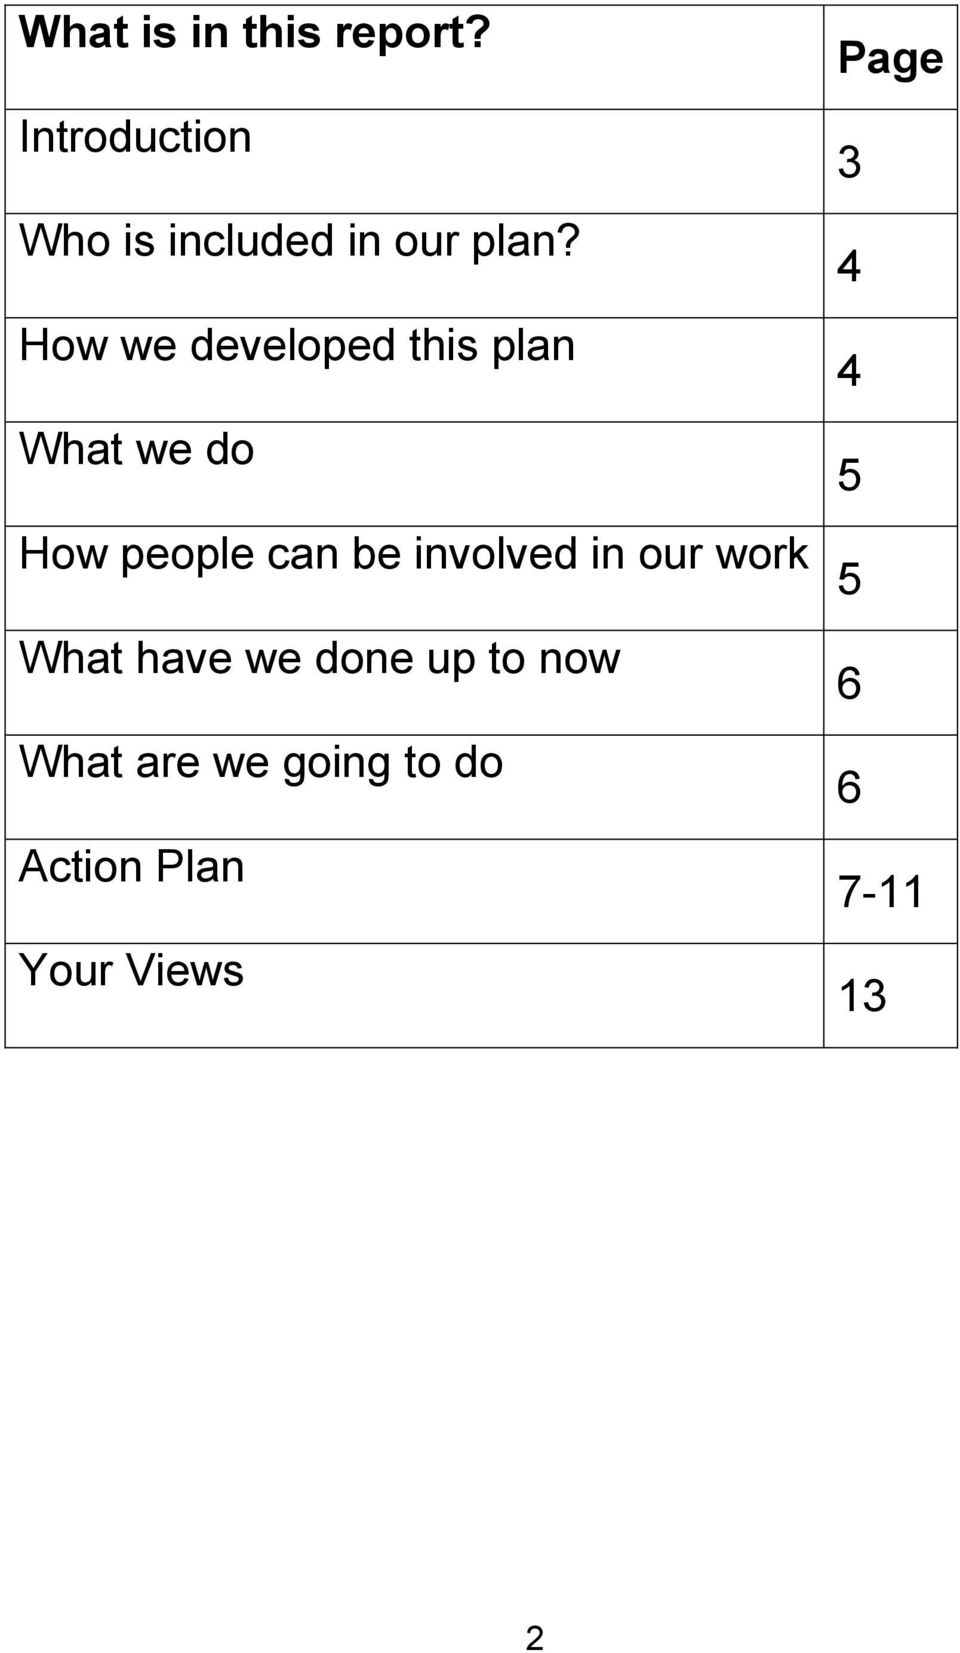 How we developed this plan What we do Page 3 4 4 5 How people